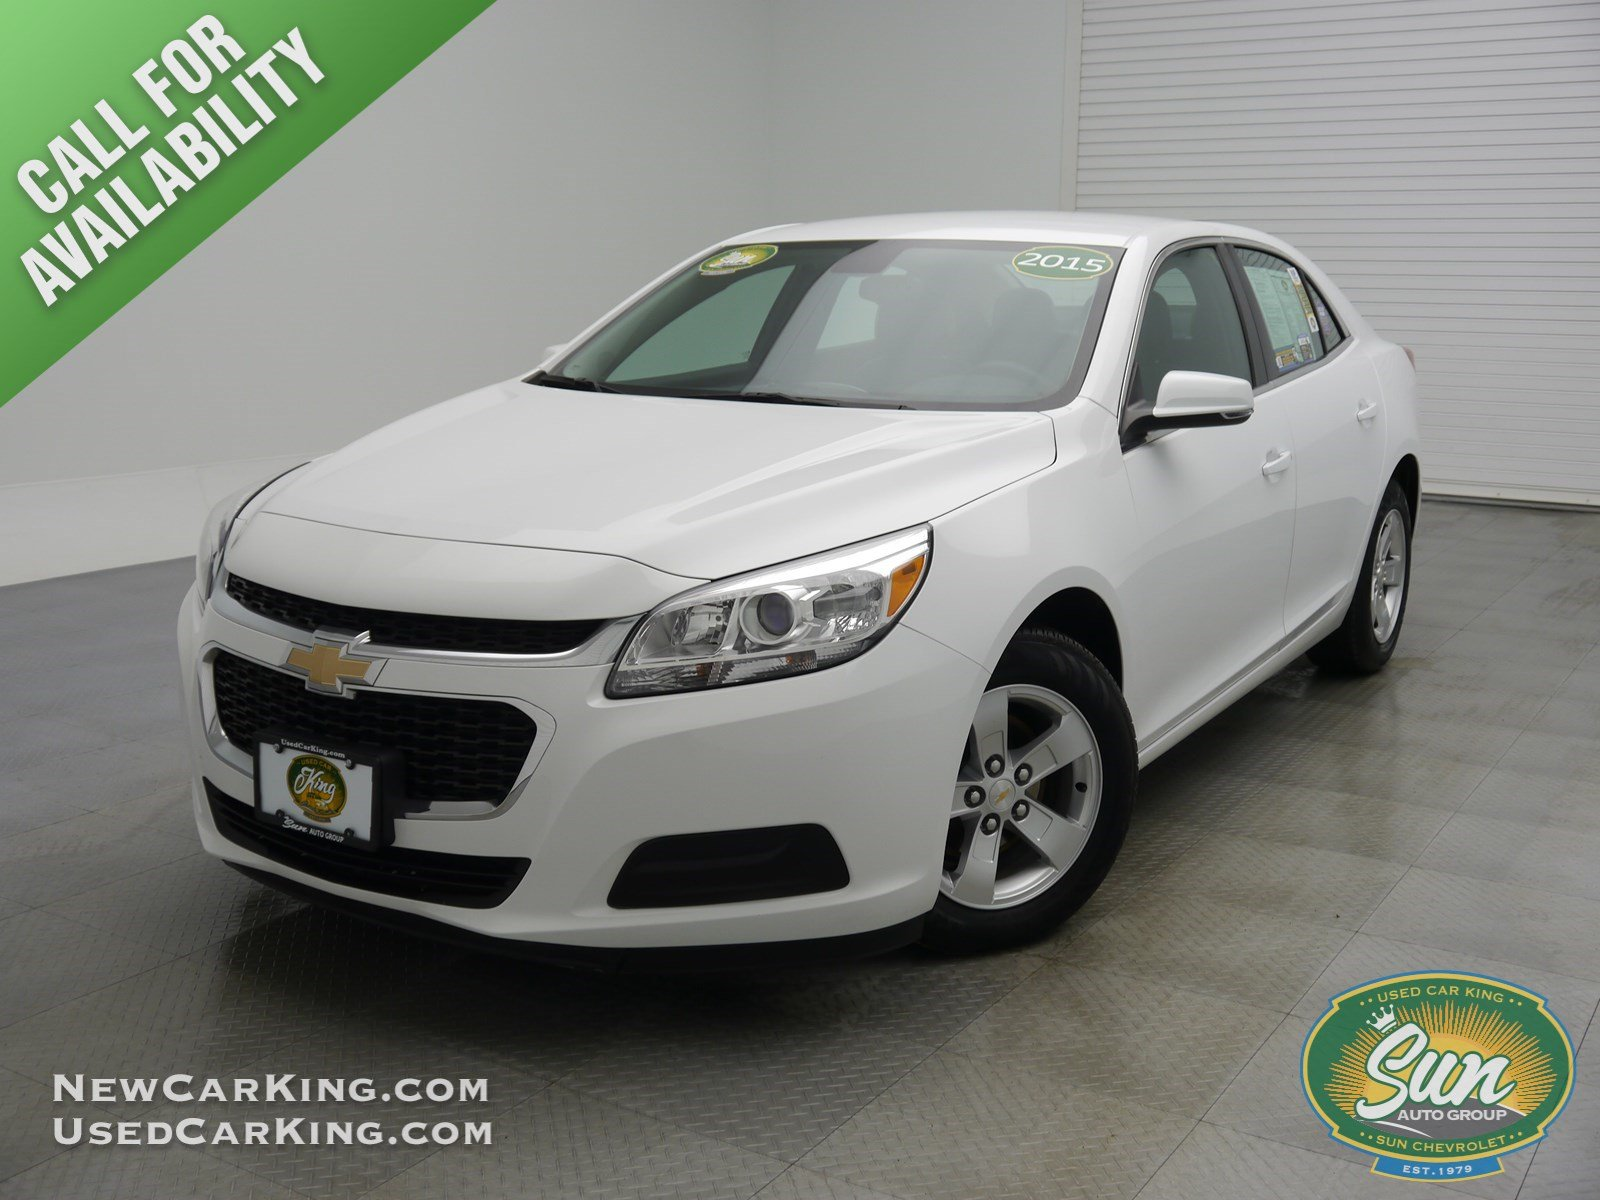 Pre Owned 2015 Chevrolet Malibu LT 4dr Car in Chittenango W